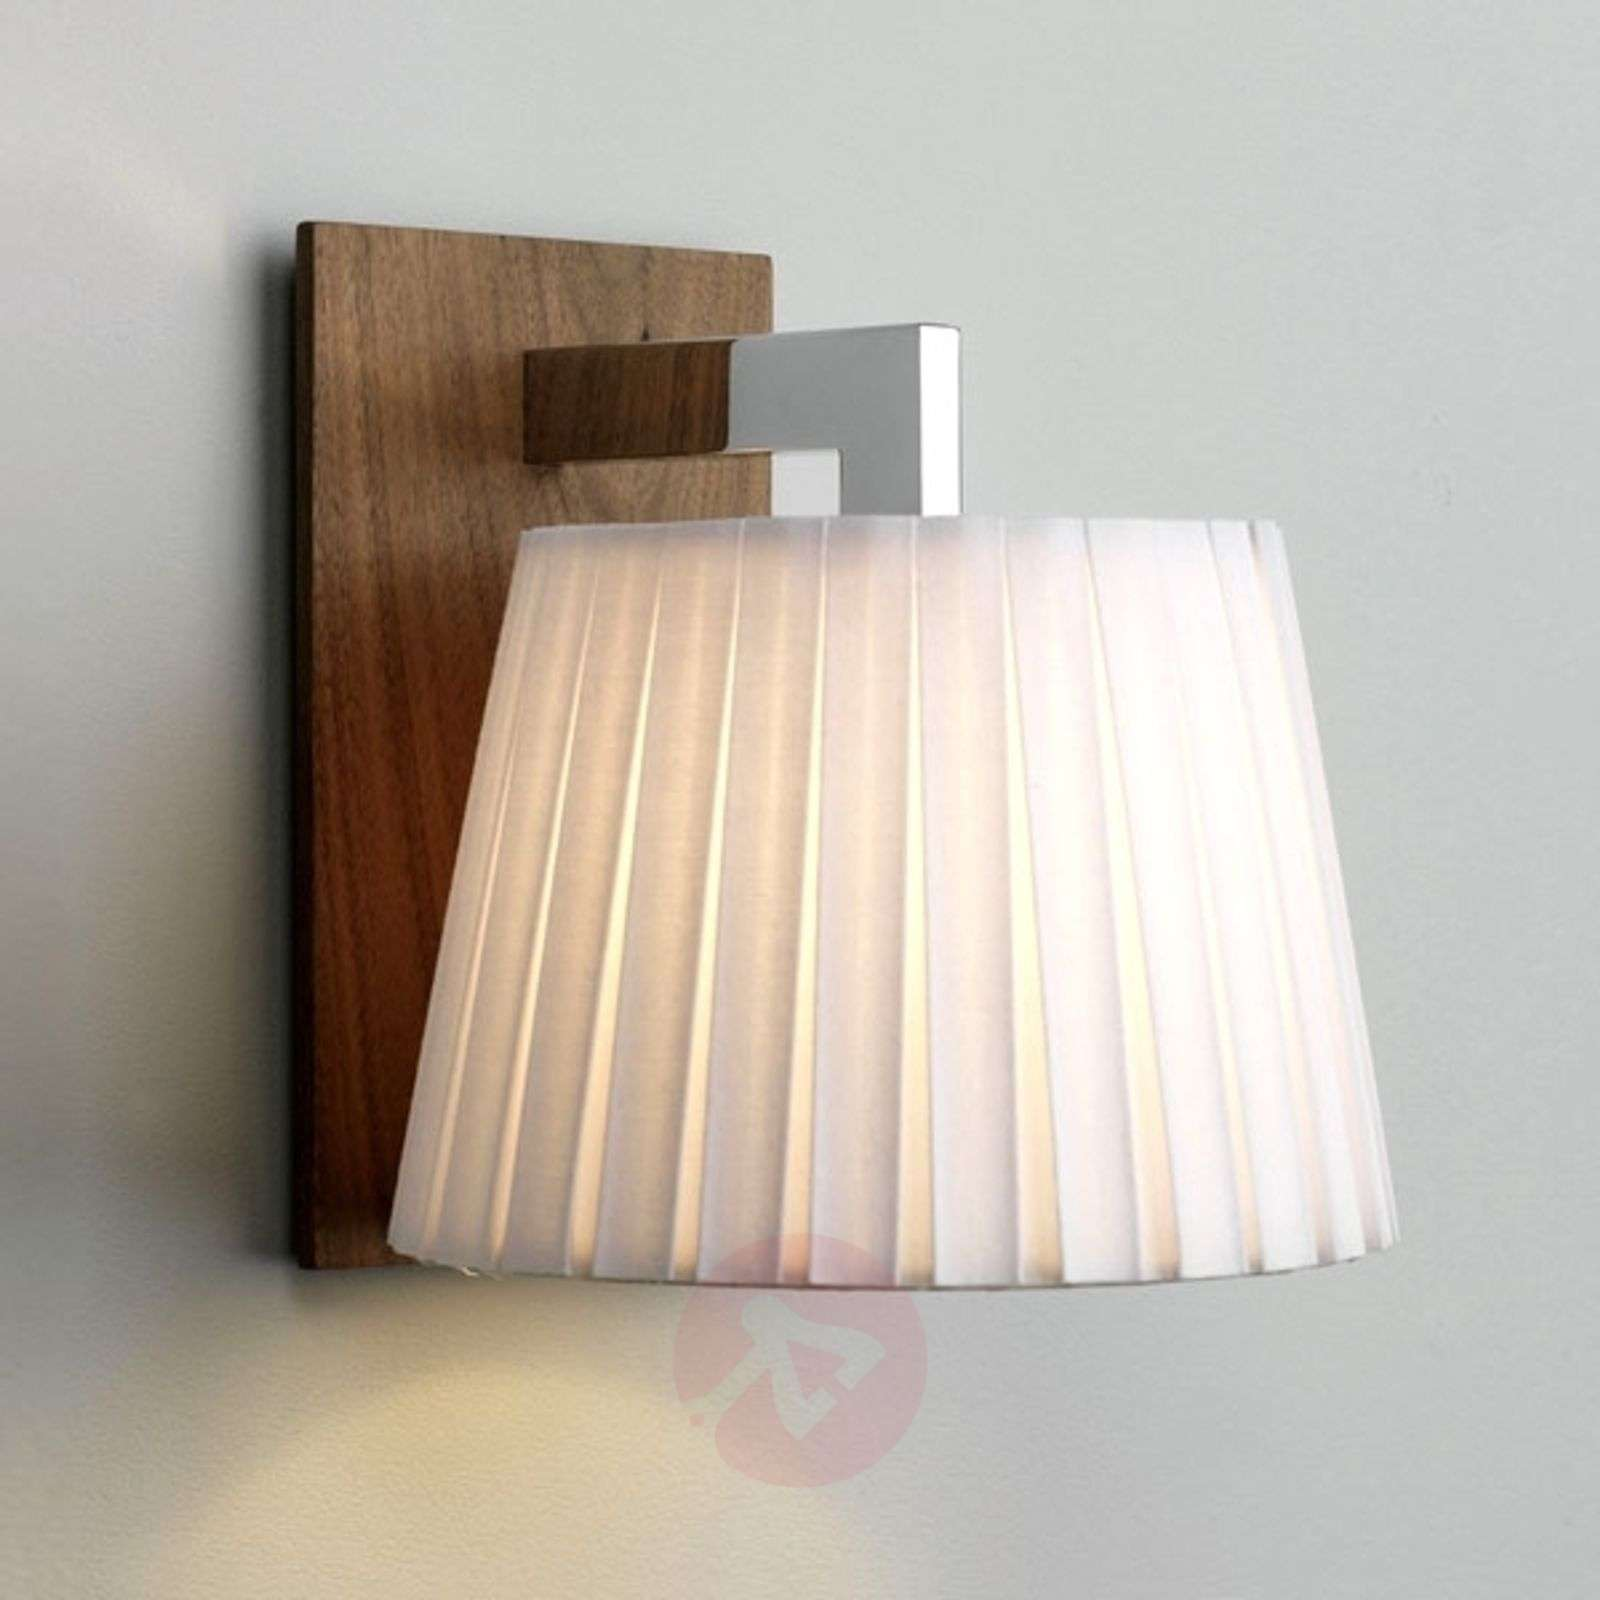 Nola Wall Light Elegant Walnut-1020214-01